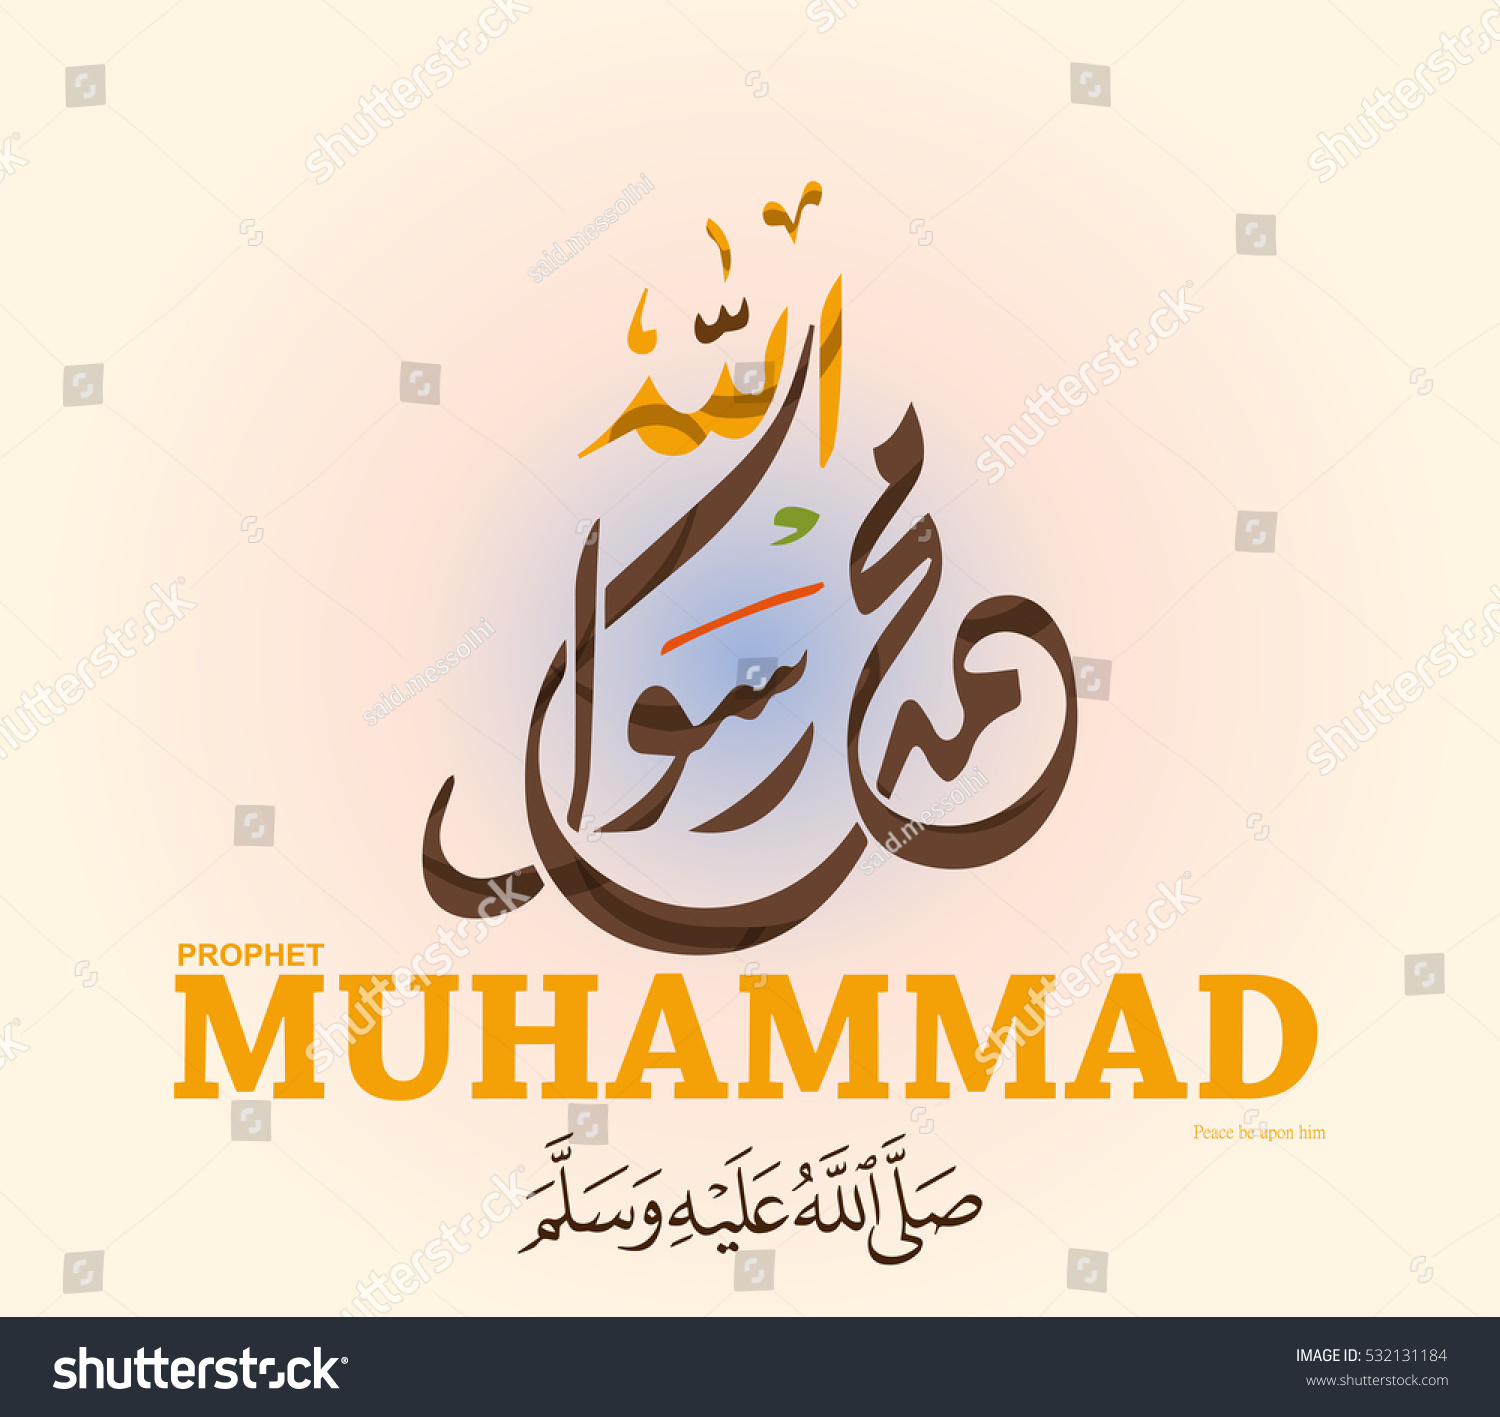 Greeting cards on occasion birthday prophet stock vector 532131184 greeting cards on the occasion of the birthday of the prophet muhammad vector arabic calligraphy kristyandbryce Gallery